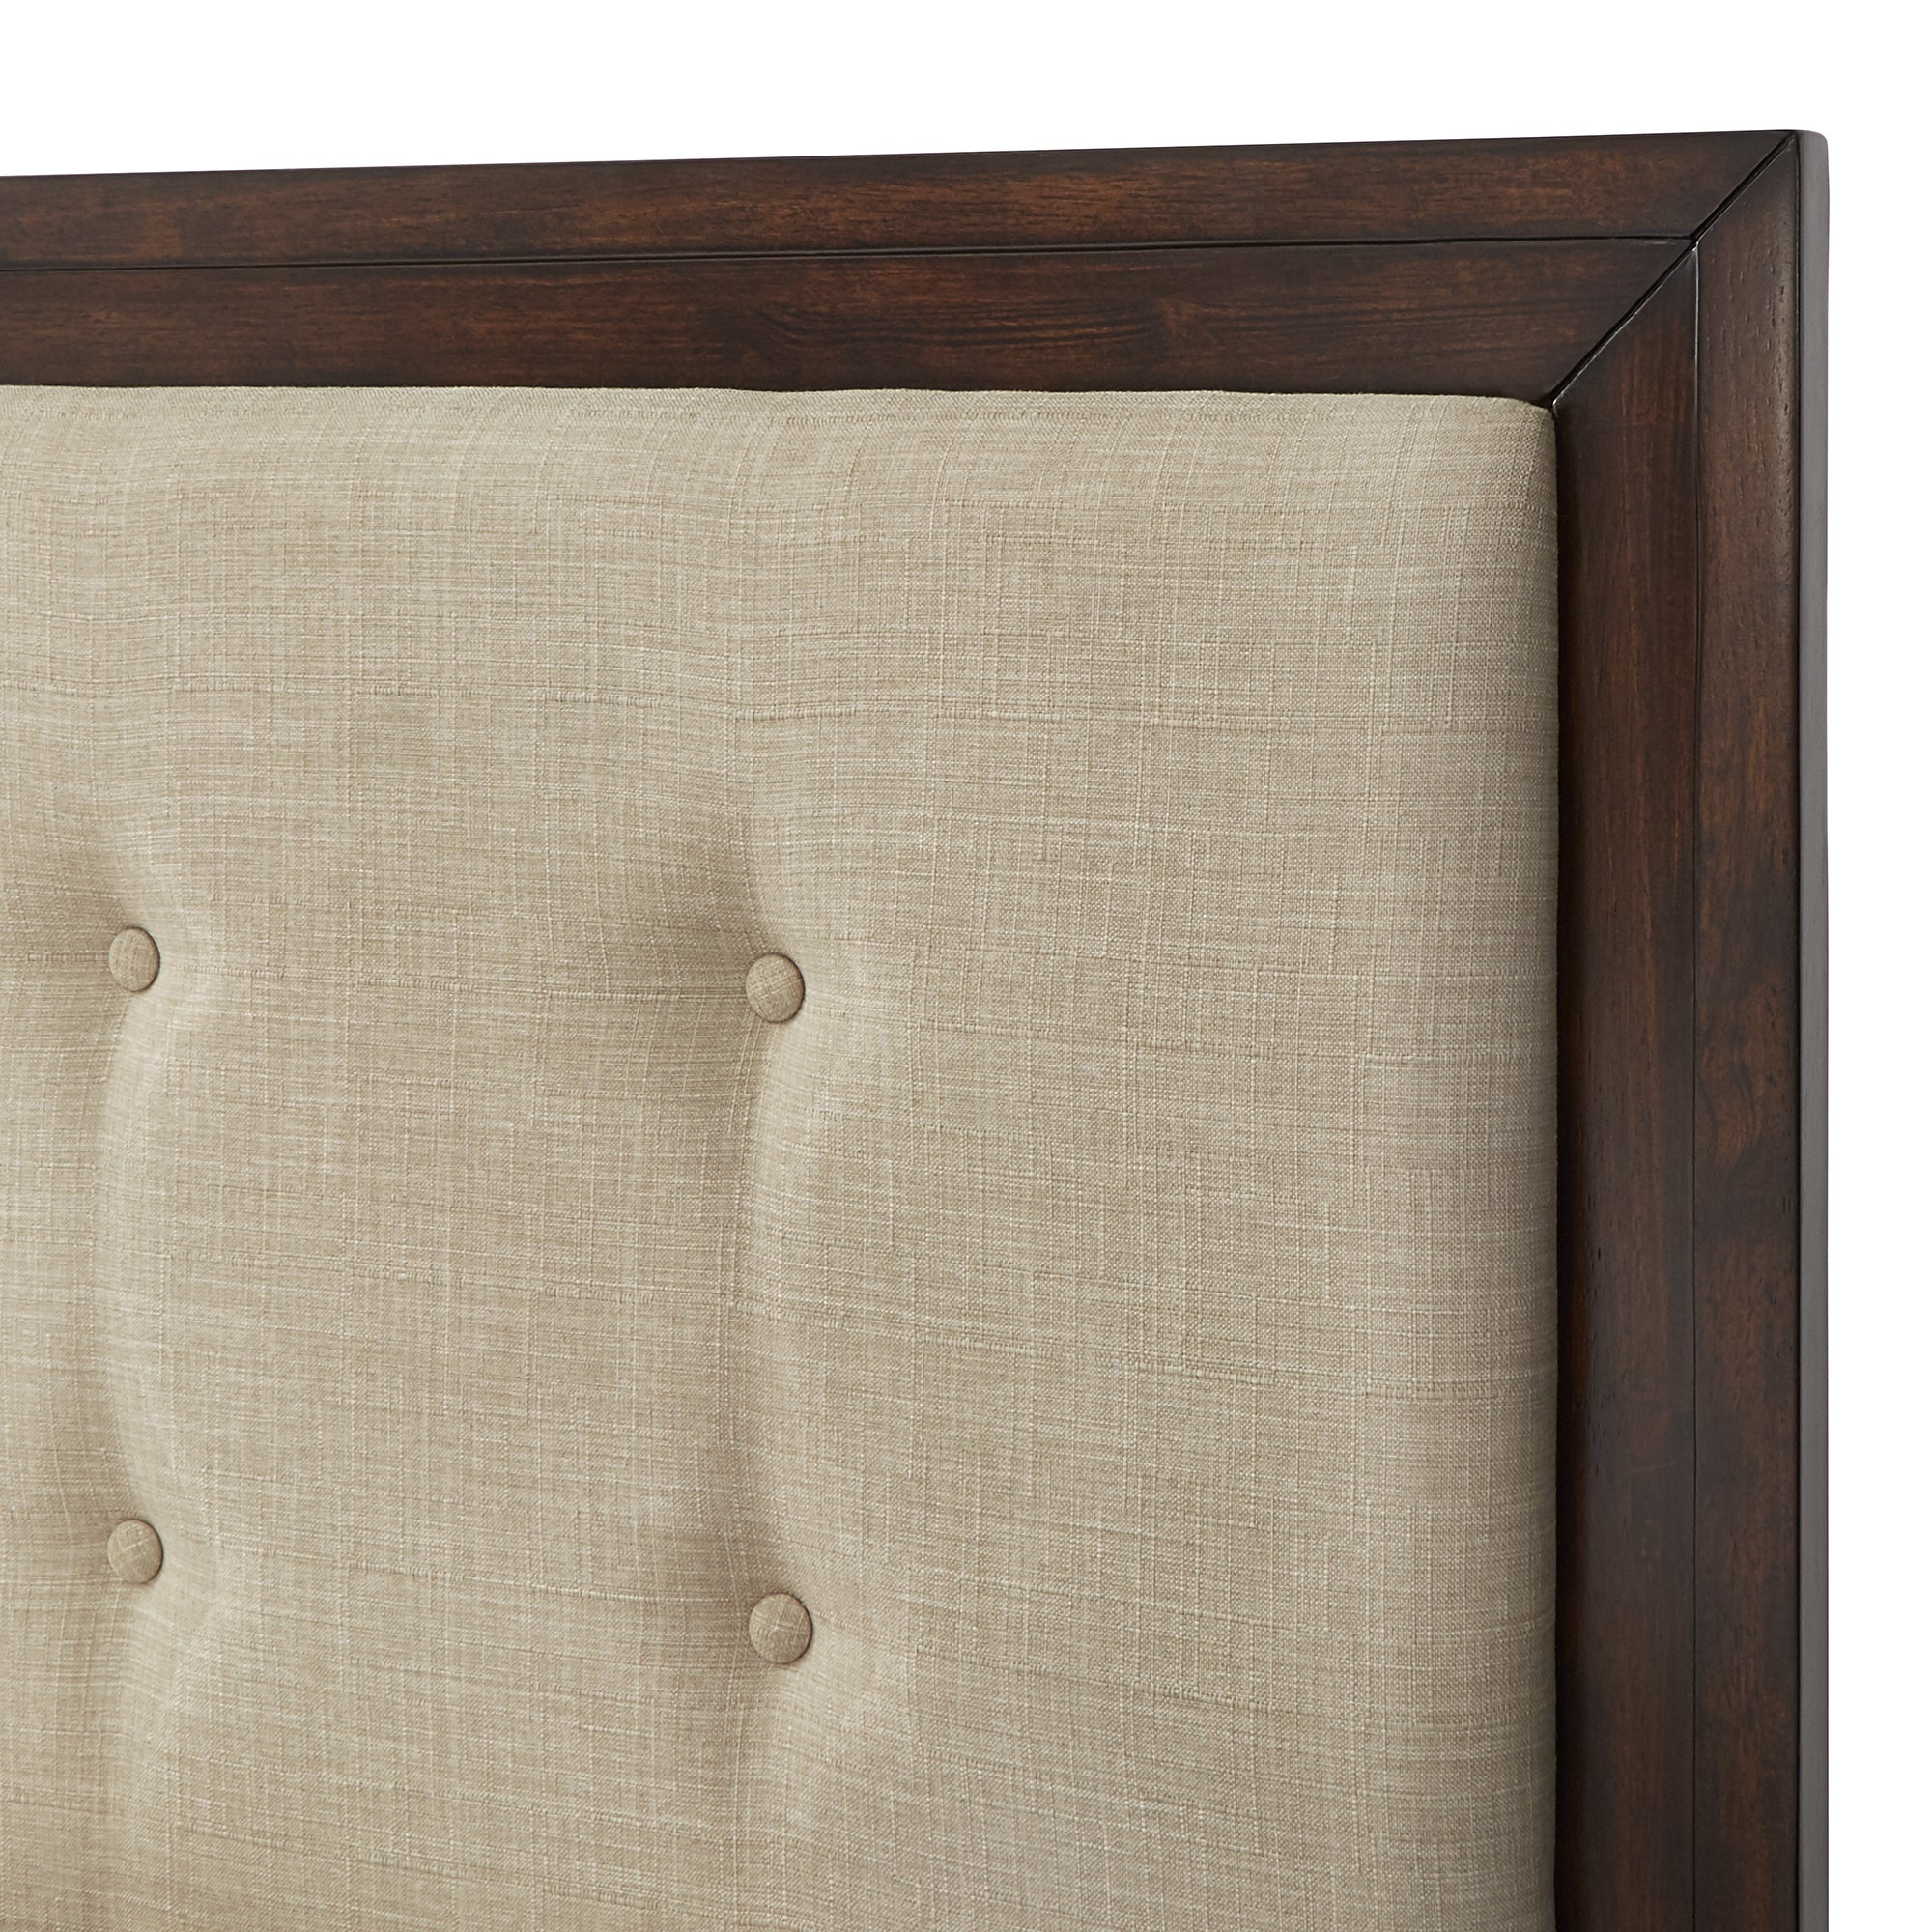 Maxwell Wood And Metal Wall Decor Intended For Well Known Shop Maxwell Wood And Tufted Linen Headboardinspire Q Classic (View 10 of 20)